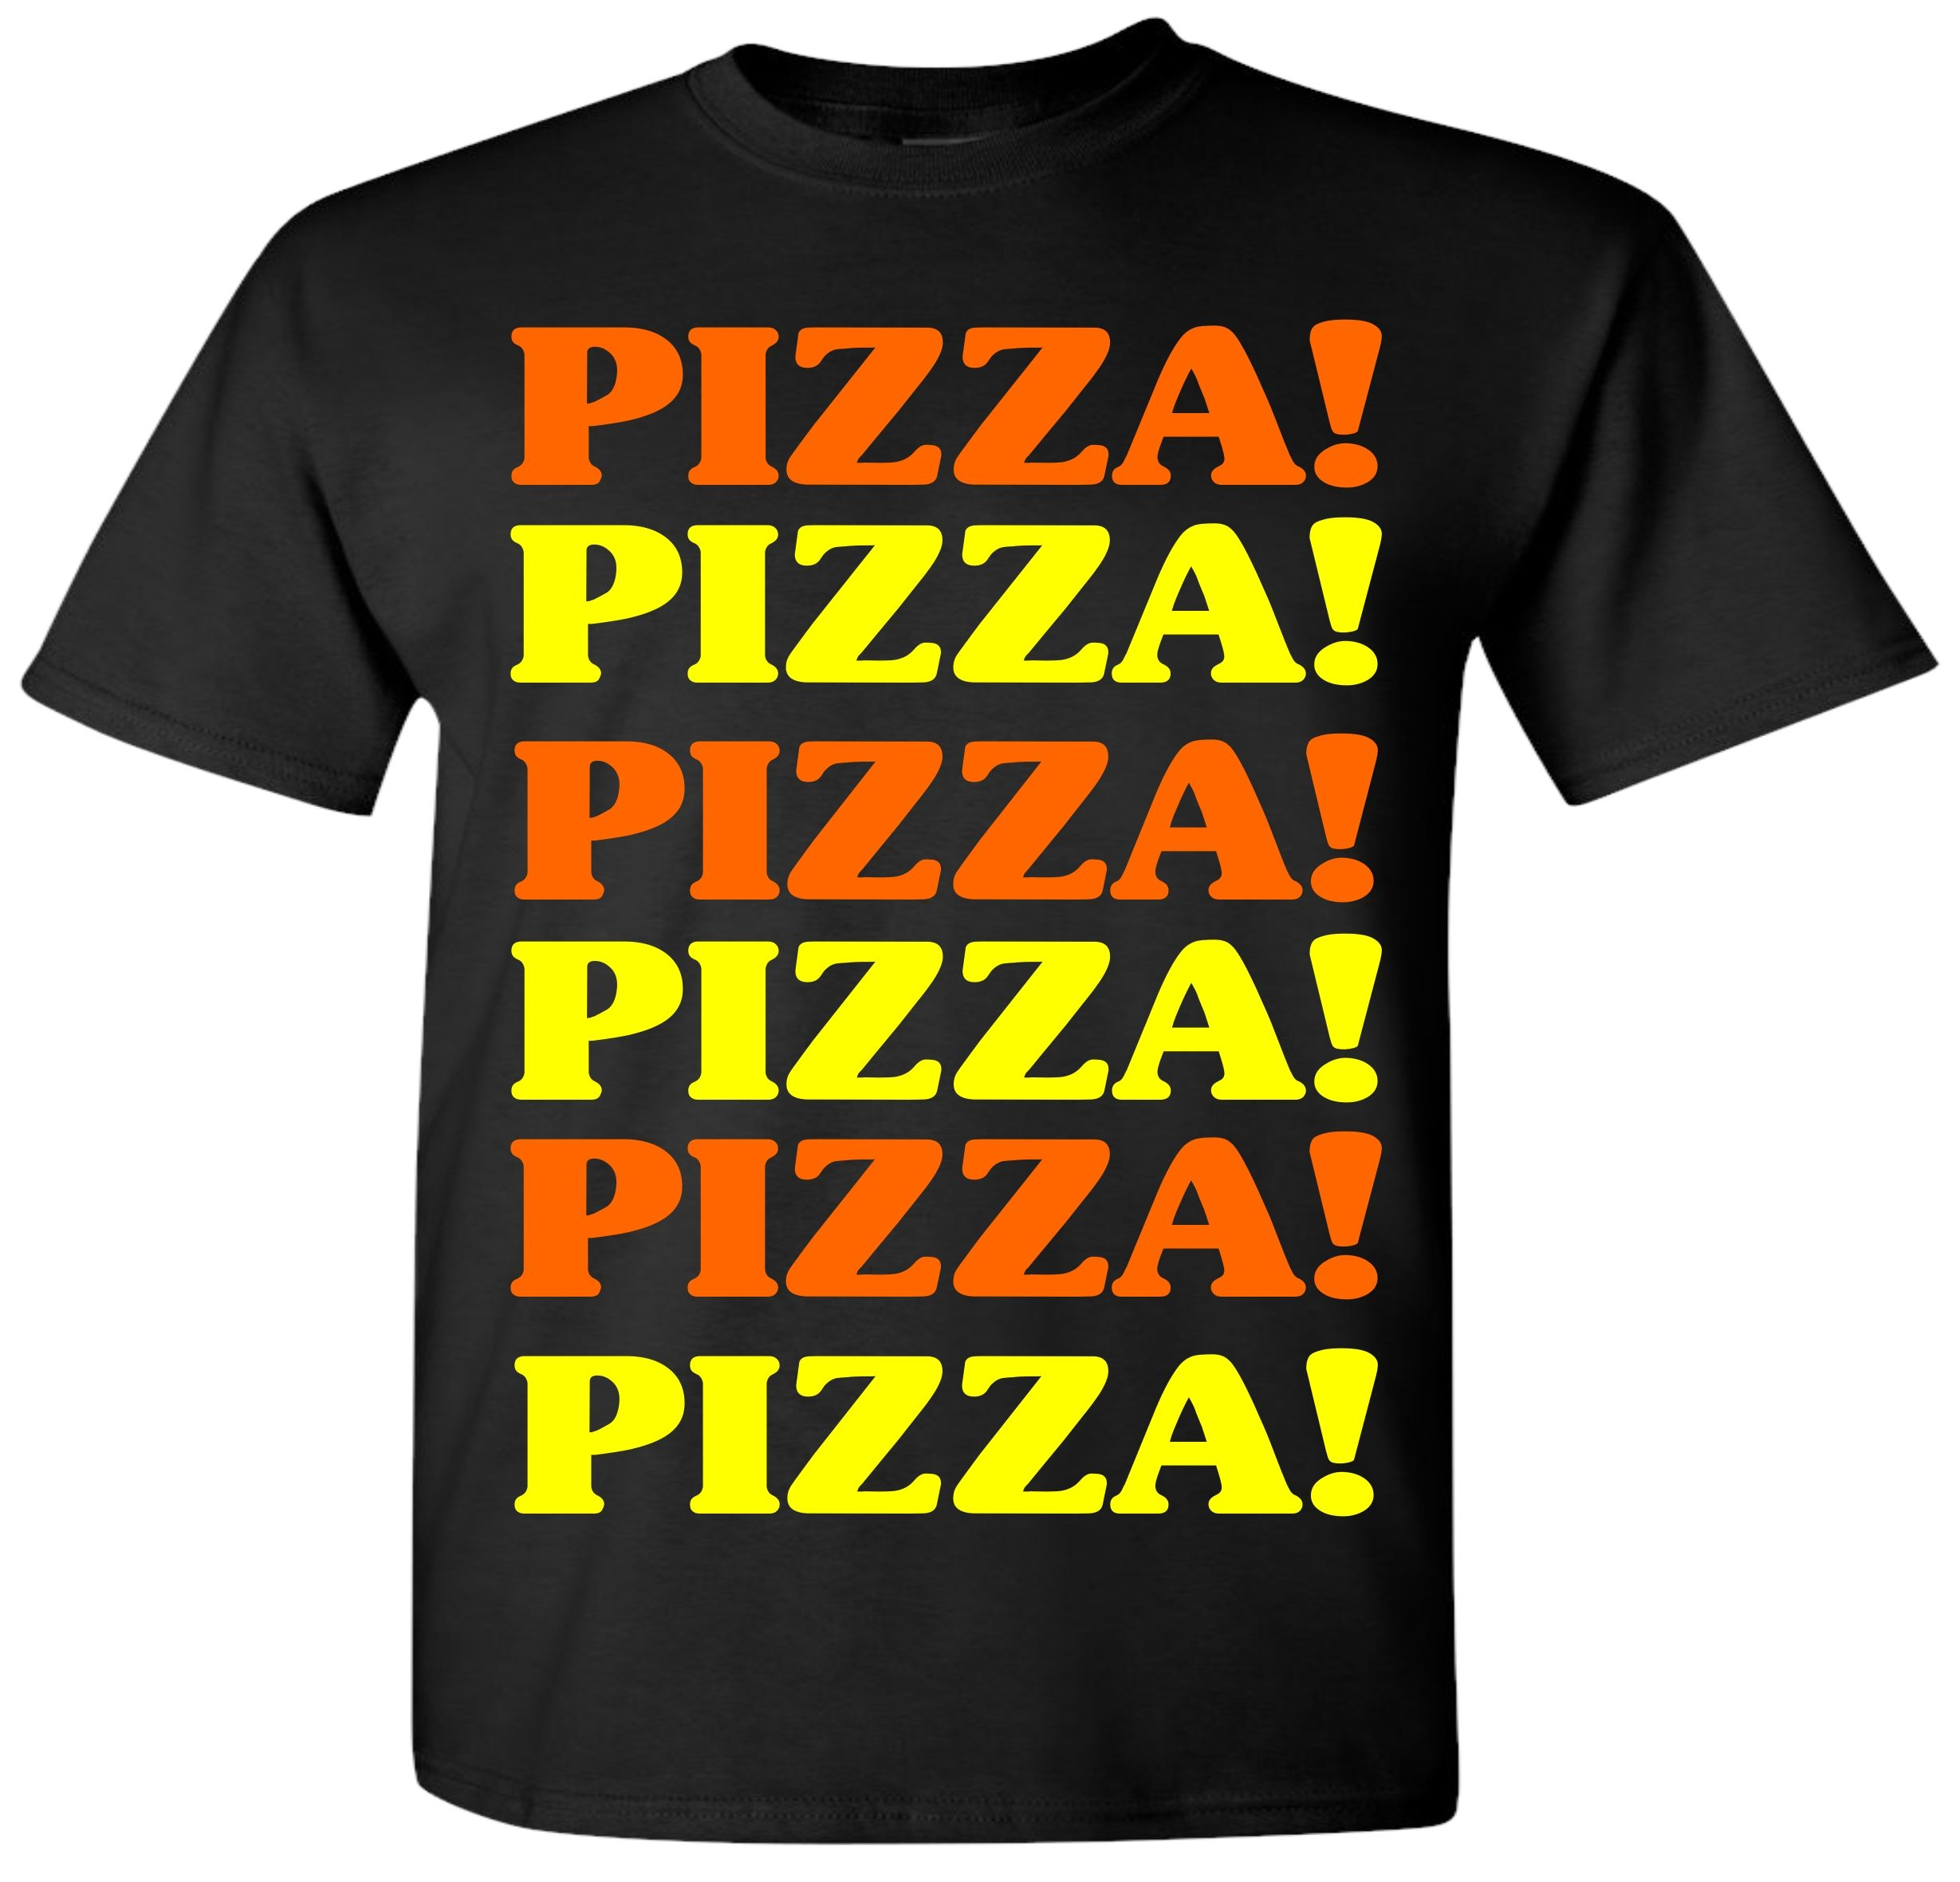 PIZZA PIZZA T-Shirt Printed in multi color Inks, On Black 100 ...